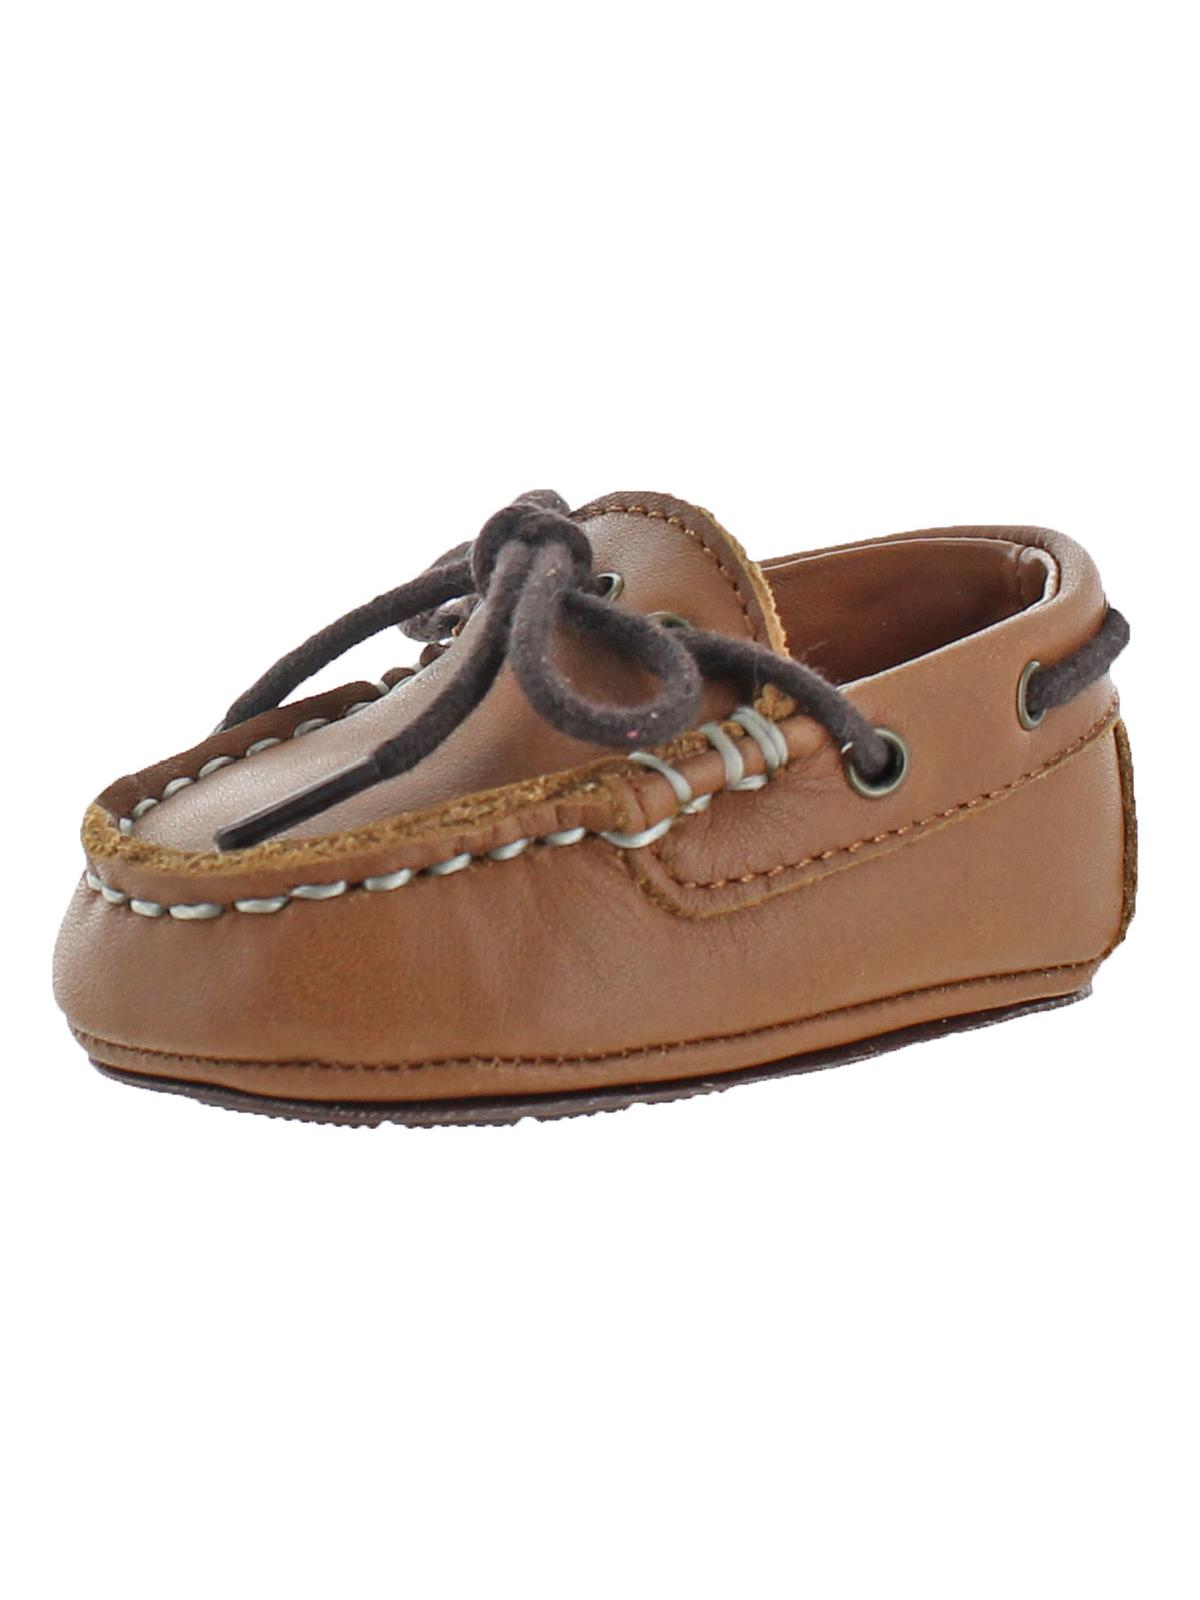 7b9249129fafee Cole Haan - Cole Haan Grant Driver Loafer Crib Shoes Driving Moccasins -  Walmart.com